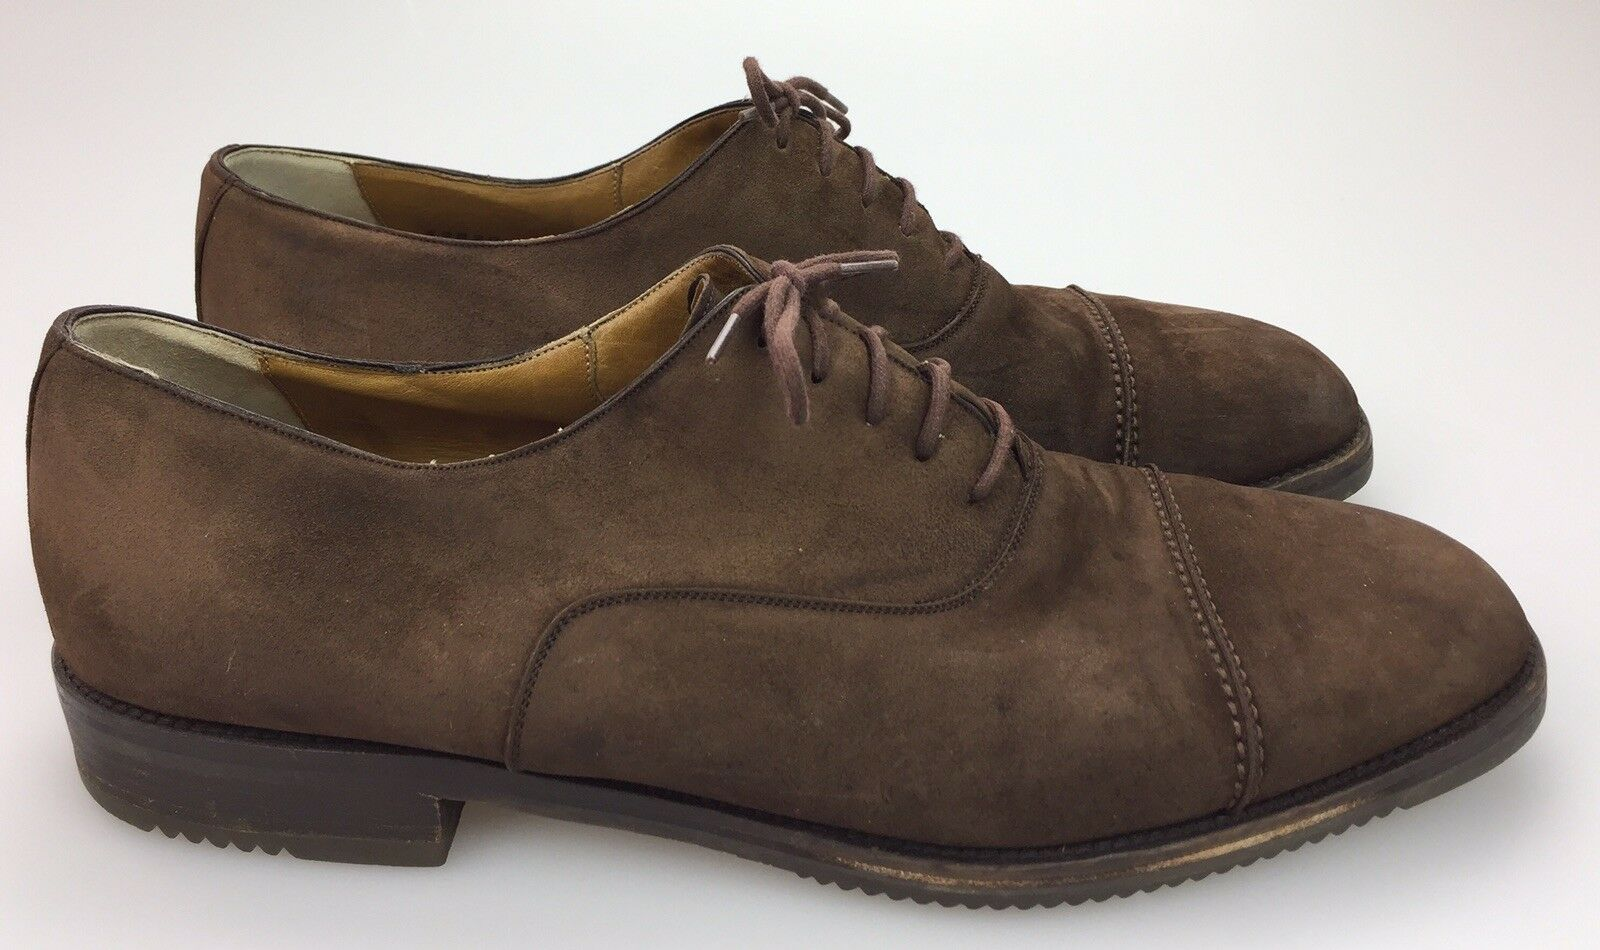 Cole Haan Oxford Cap Toe Brown Suede Leather Lace Up shoes  Mens Size 10 D